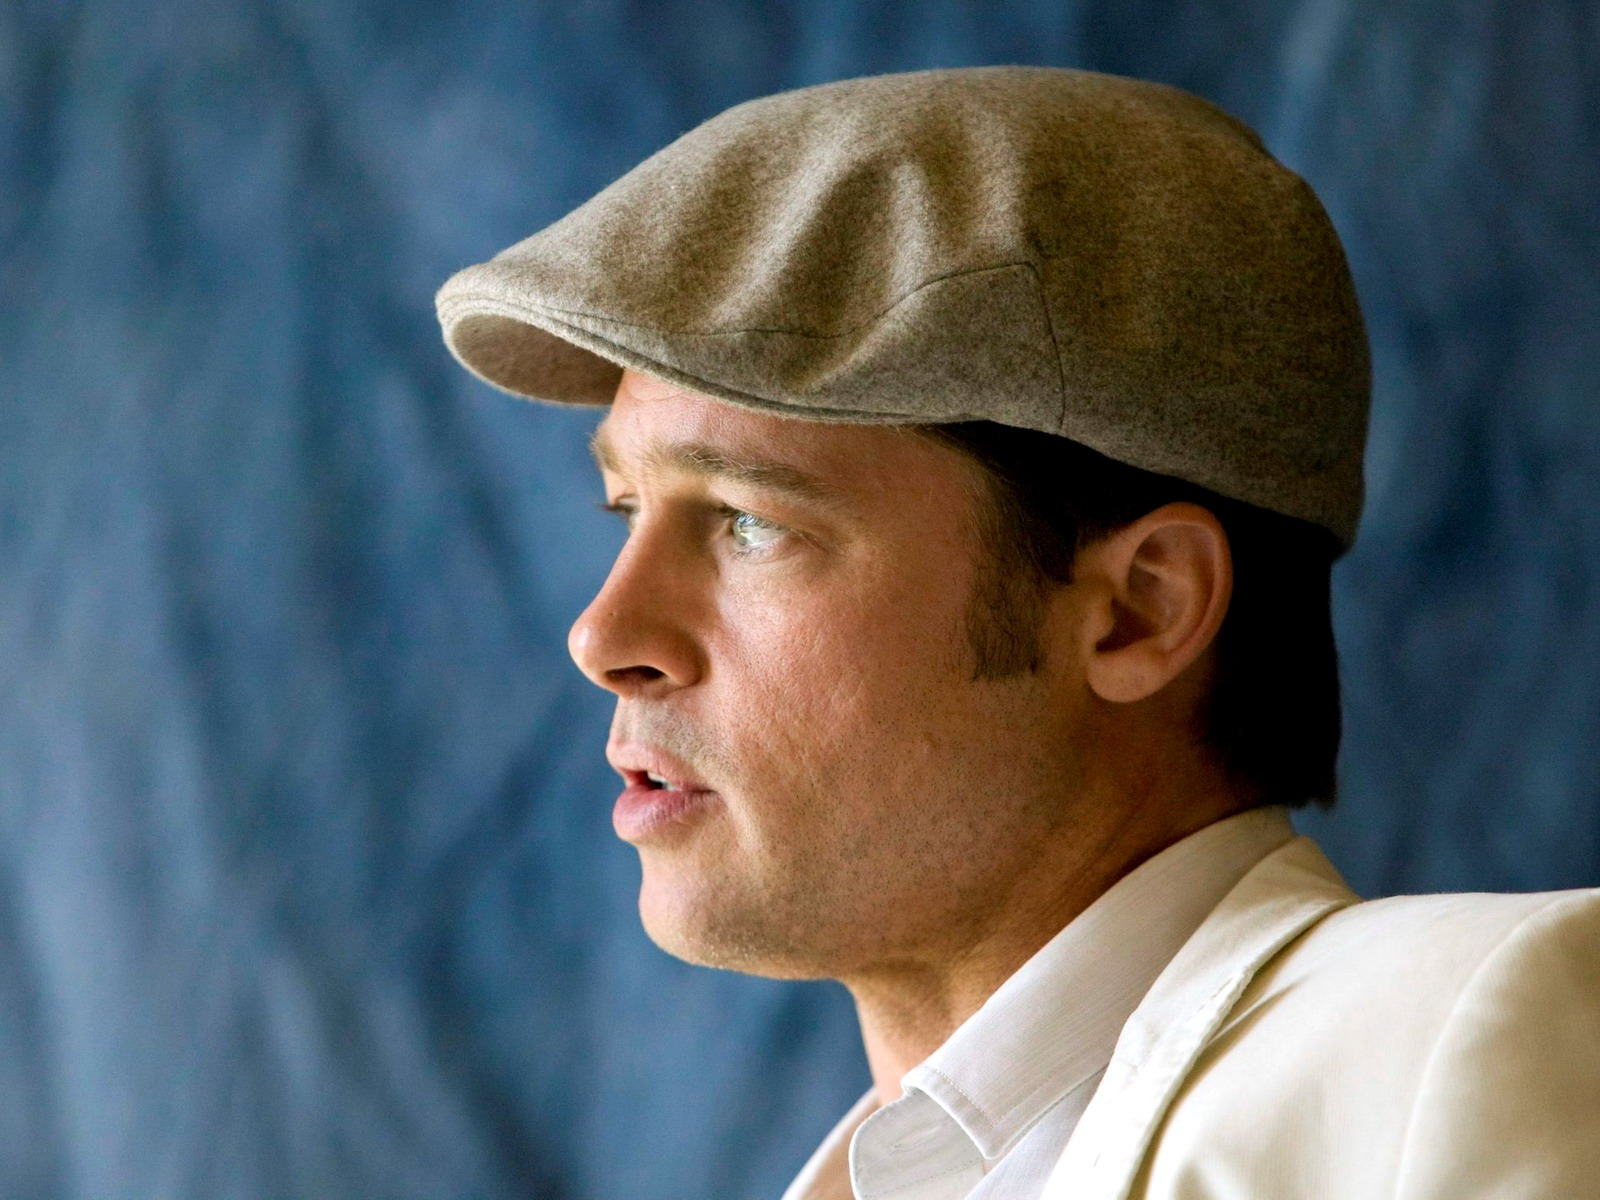 Brad Pitt in the cap